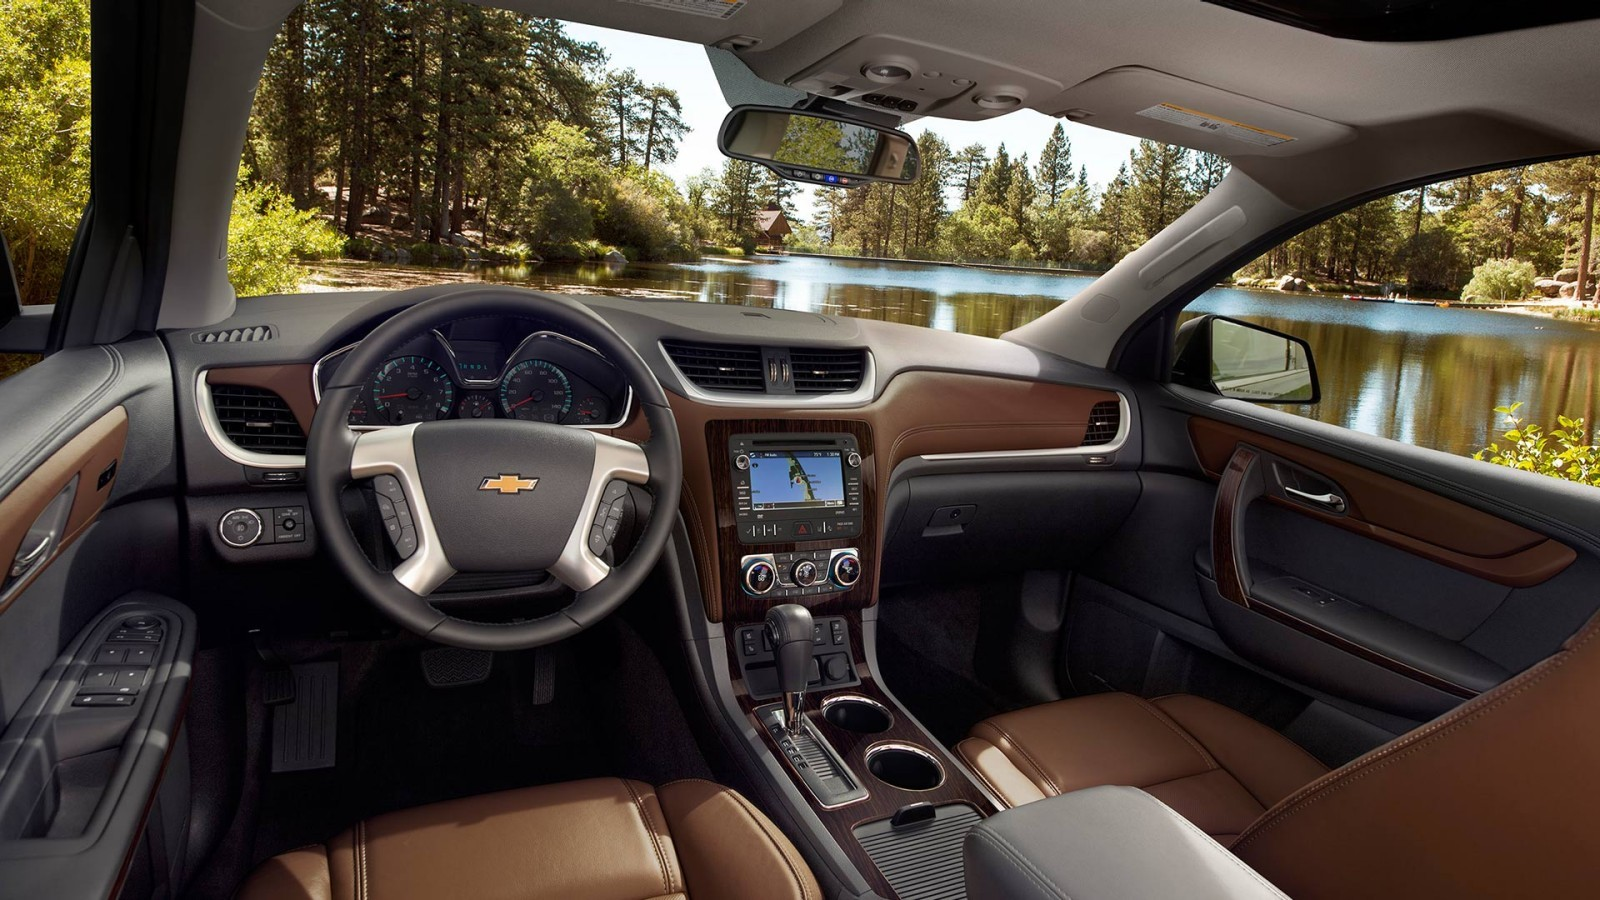 2016 Traverse Technology